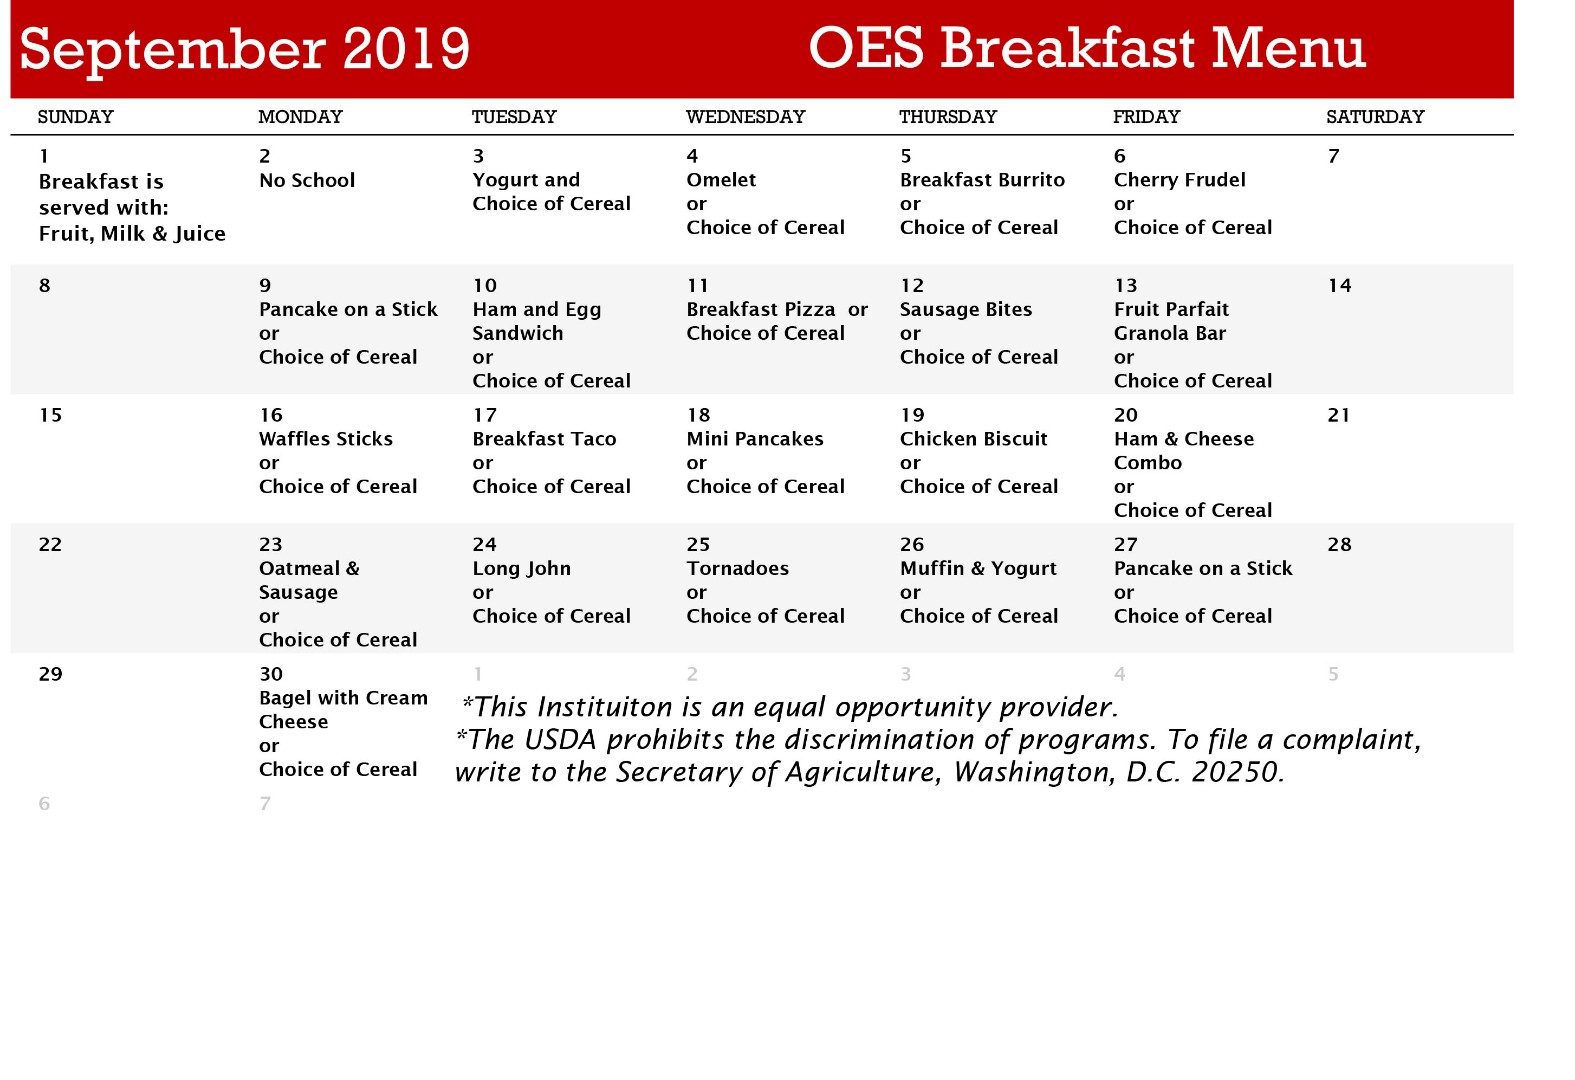 Decatur Community Schools - OES Breakfast Menu - September